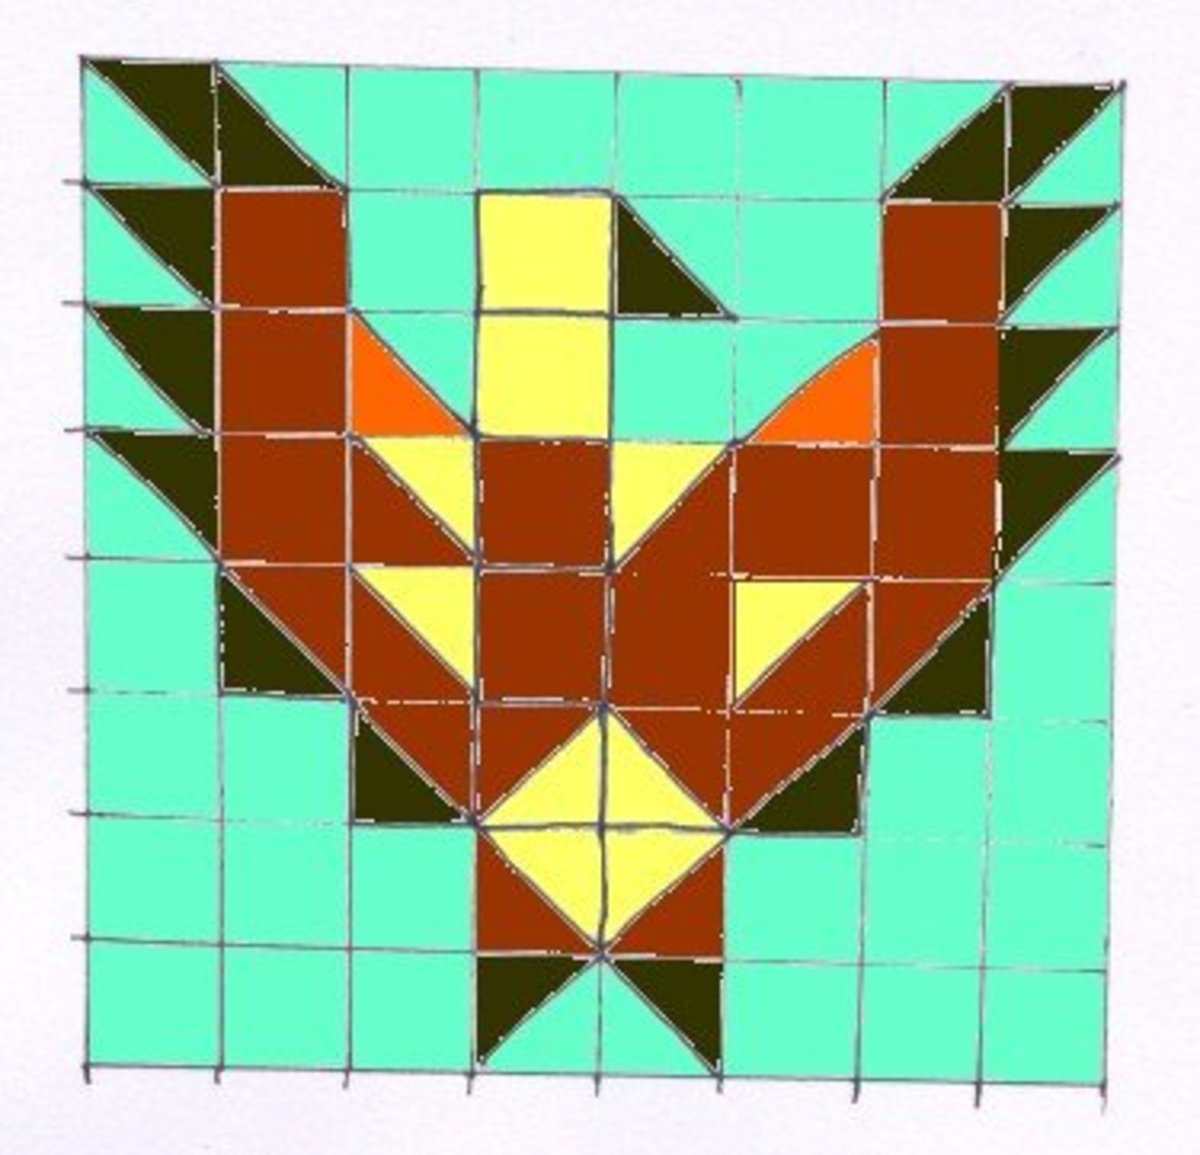 Patchwork eagle pattern based on a traditional Native American symbol.